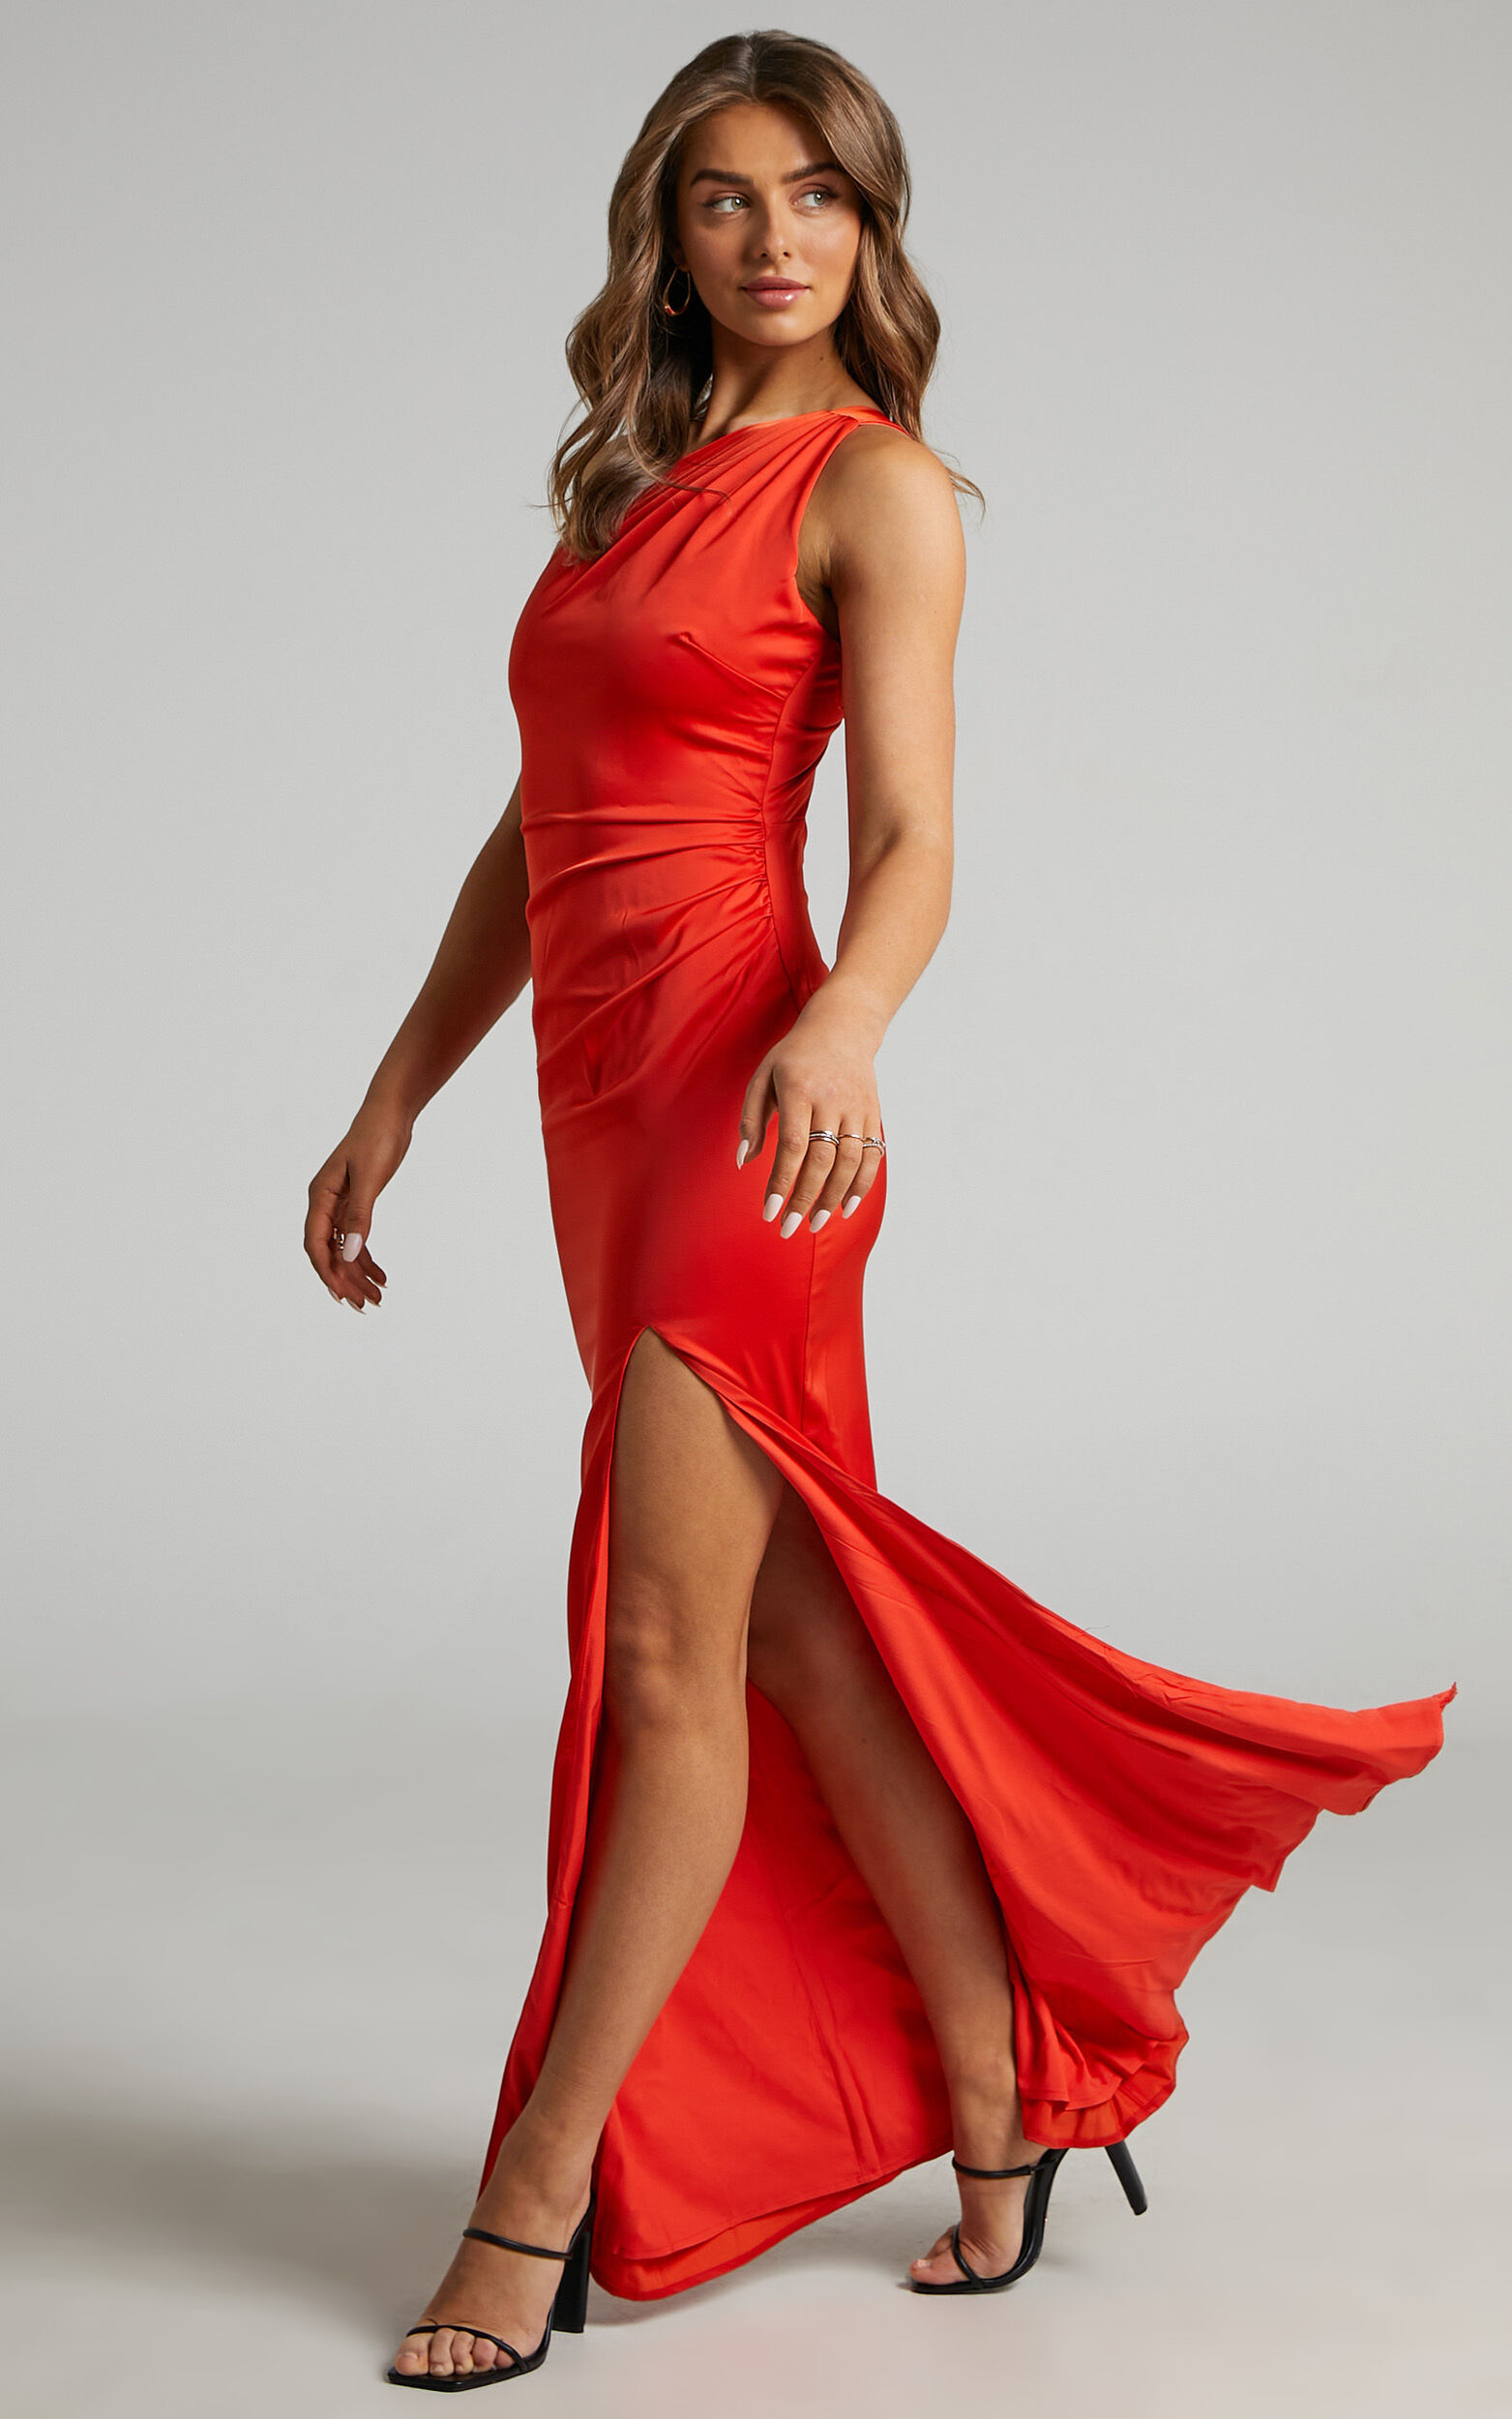 Victoire One Shoulder Maxi Dress in Oxy Fire Satin - 04, ORG2, super-hi-res image number null